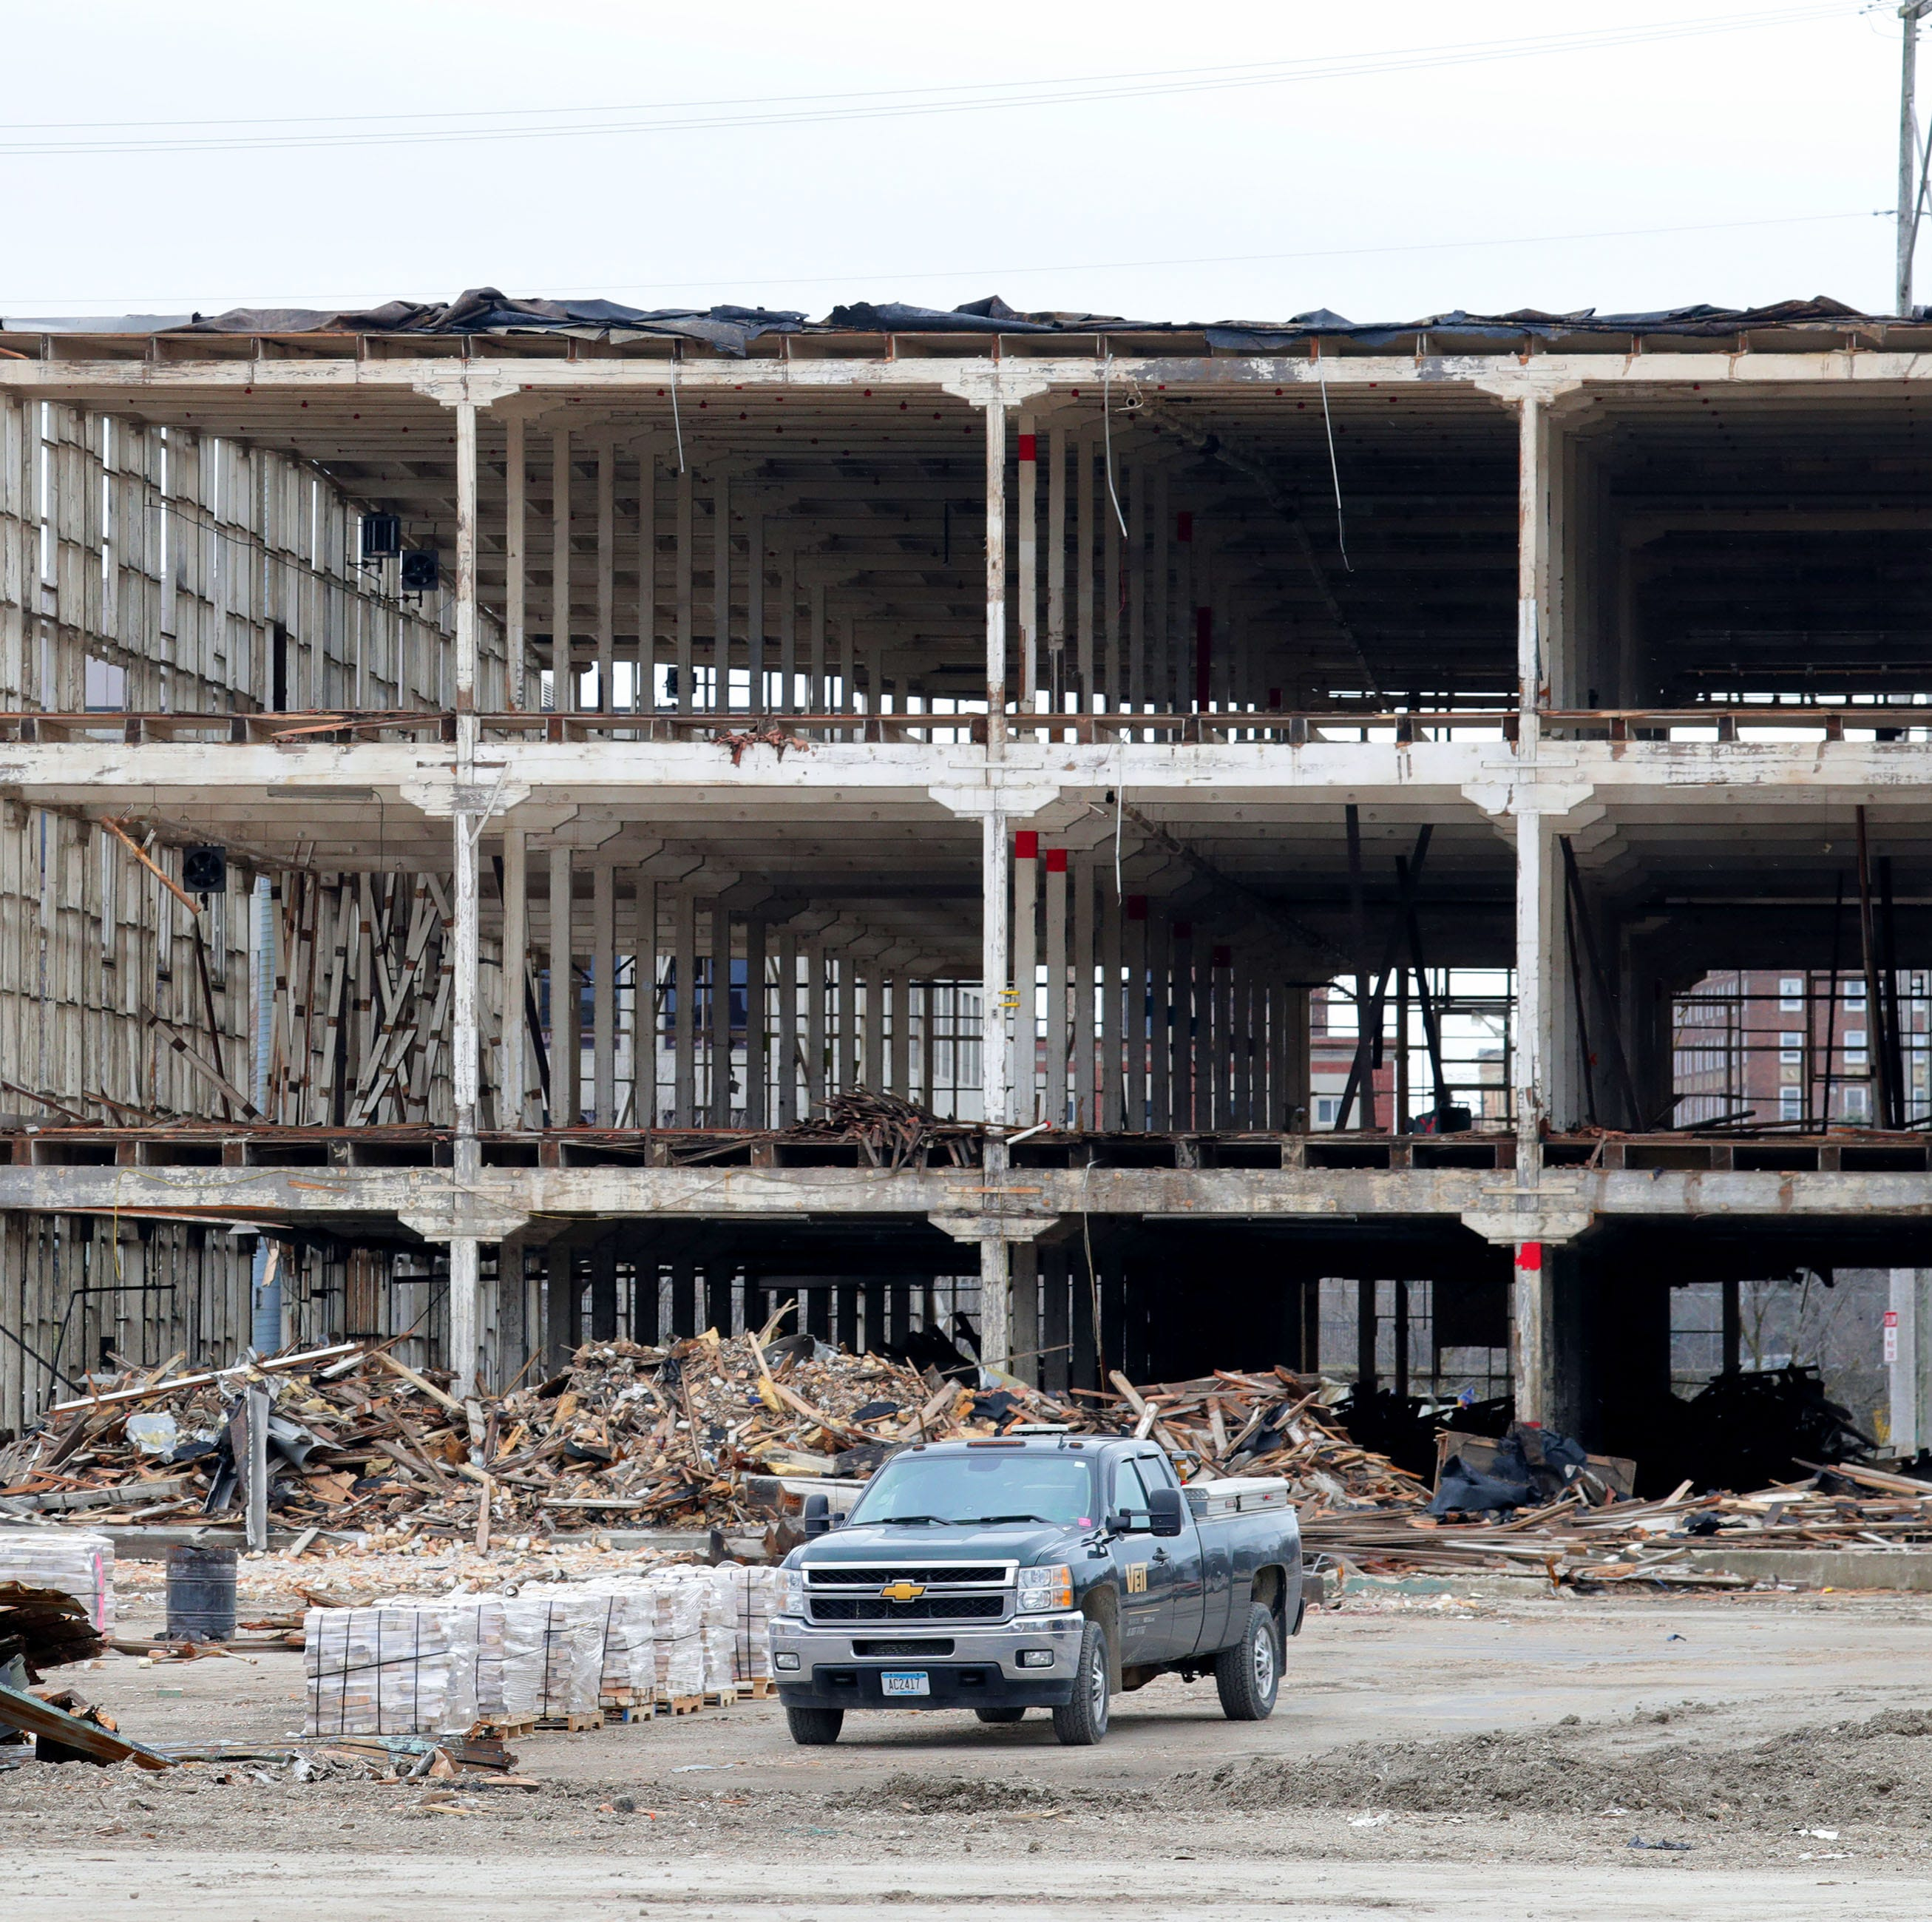 A former JI Case manufacturing facility is gutted. Urban Evolutions, a company based in Appleton, is working on the deconstruction of two old JI Case buildings in Racine.